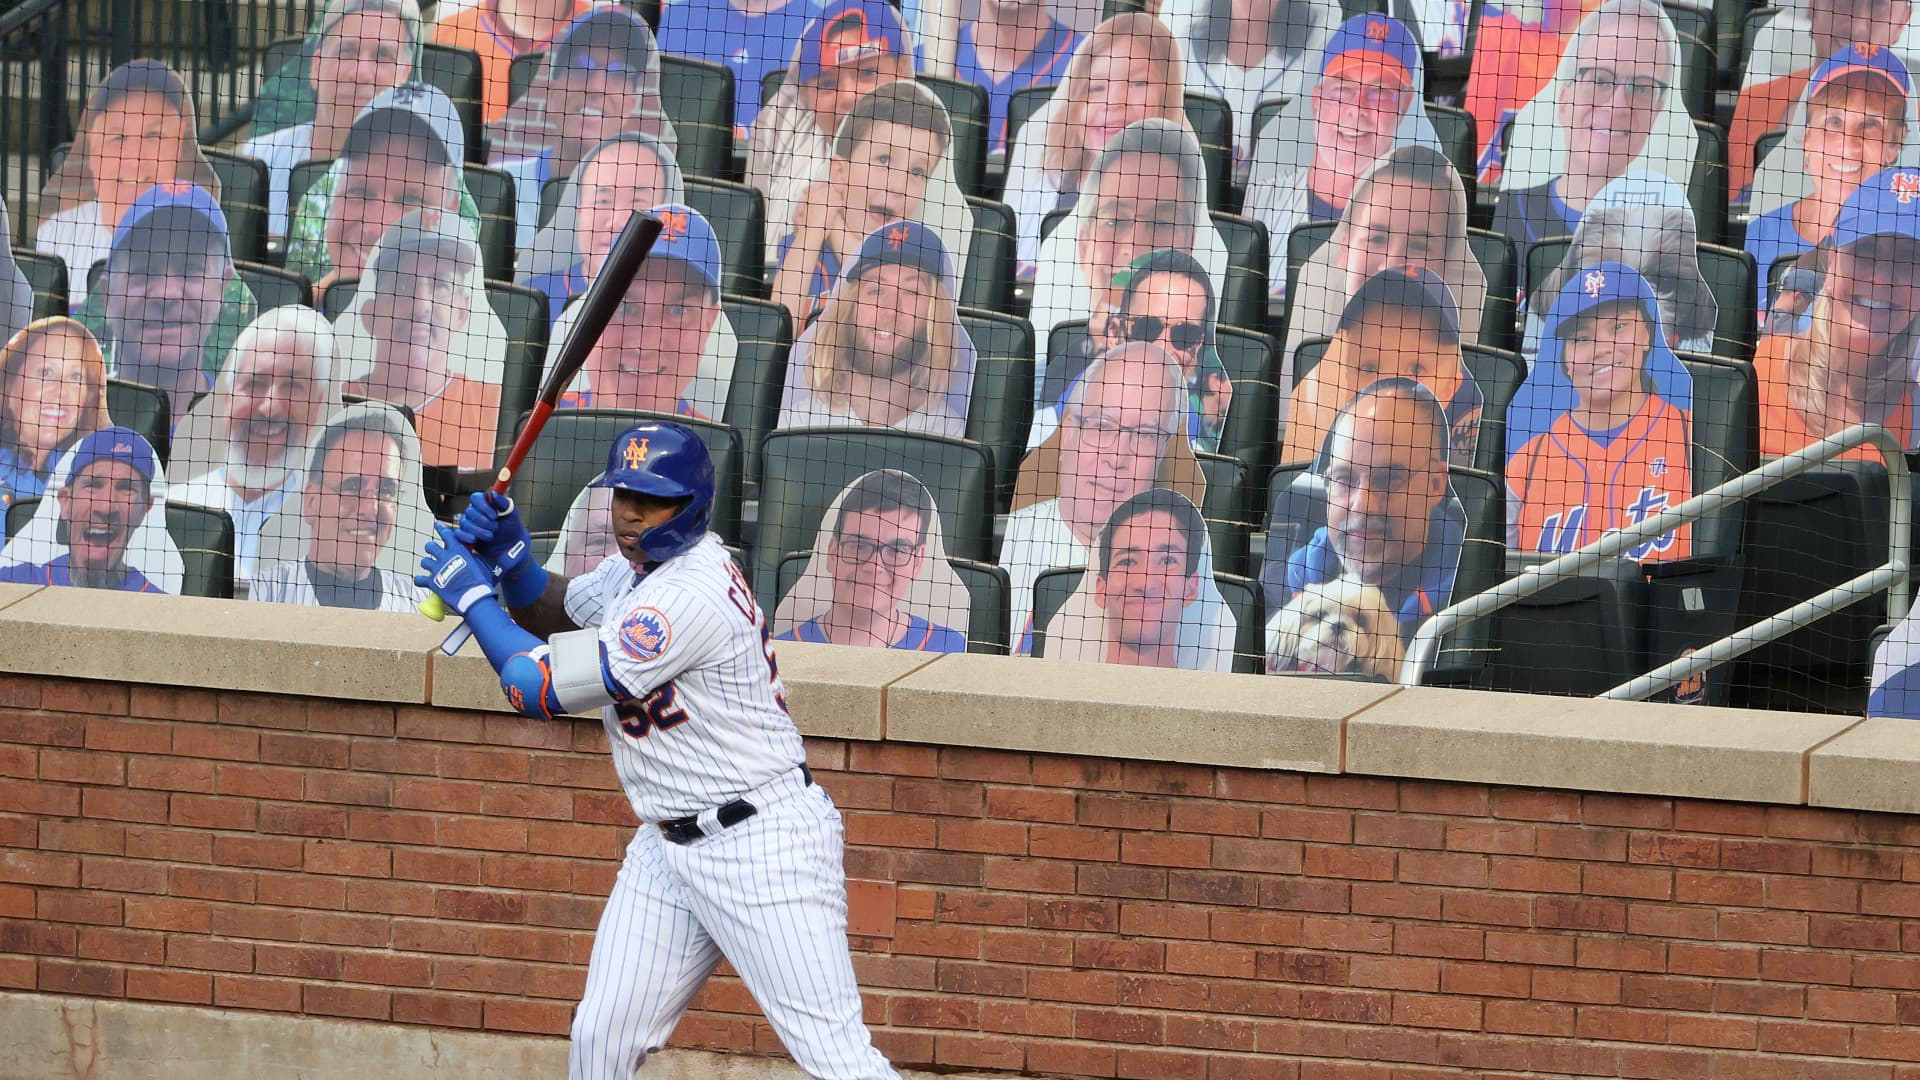 Yoenis Cespedes #52 of the New York Mets stands in the on deck circle in front of cardboard fans during their Pre Season game at Citi Field on July 18, 2020 in New York City.